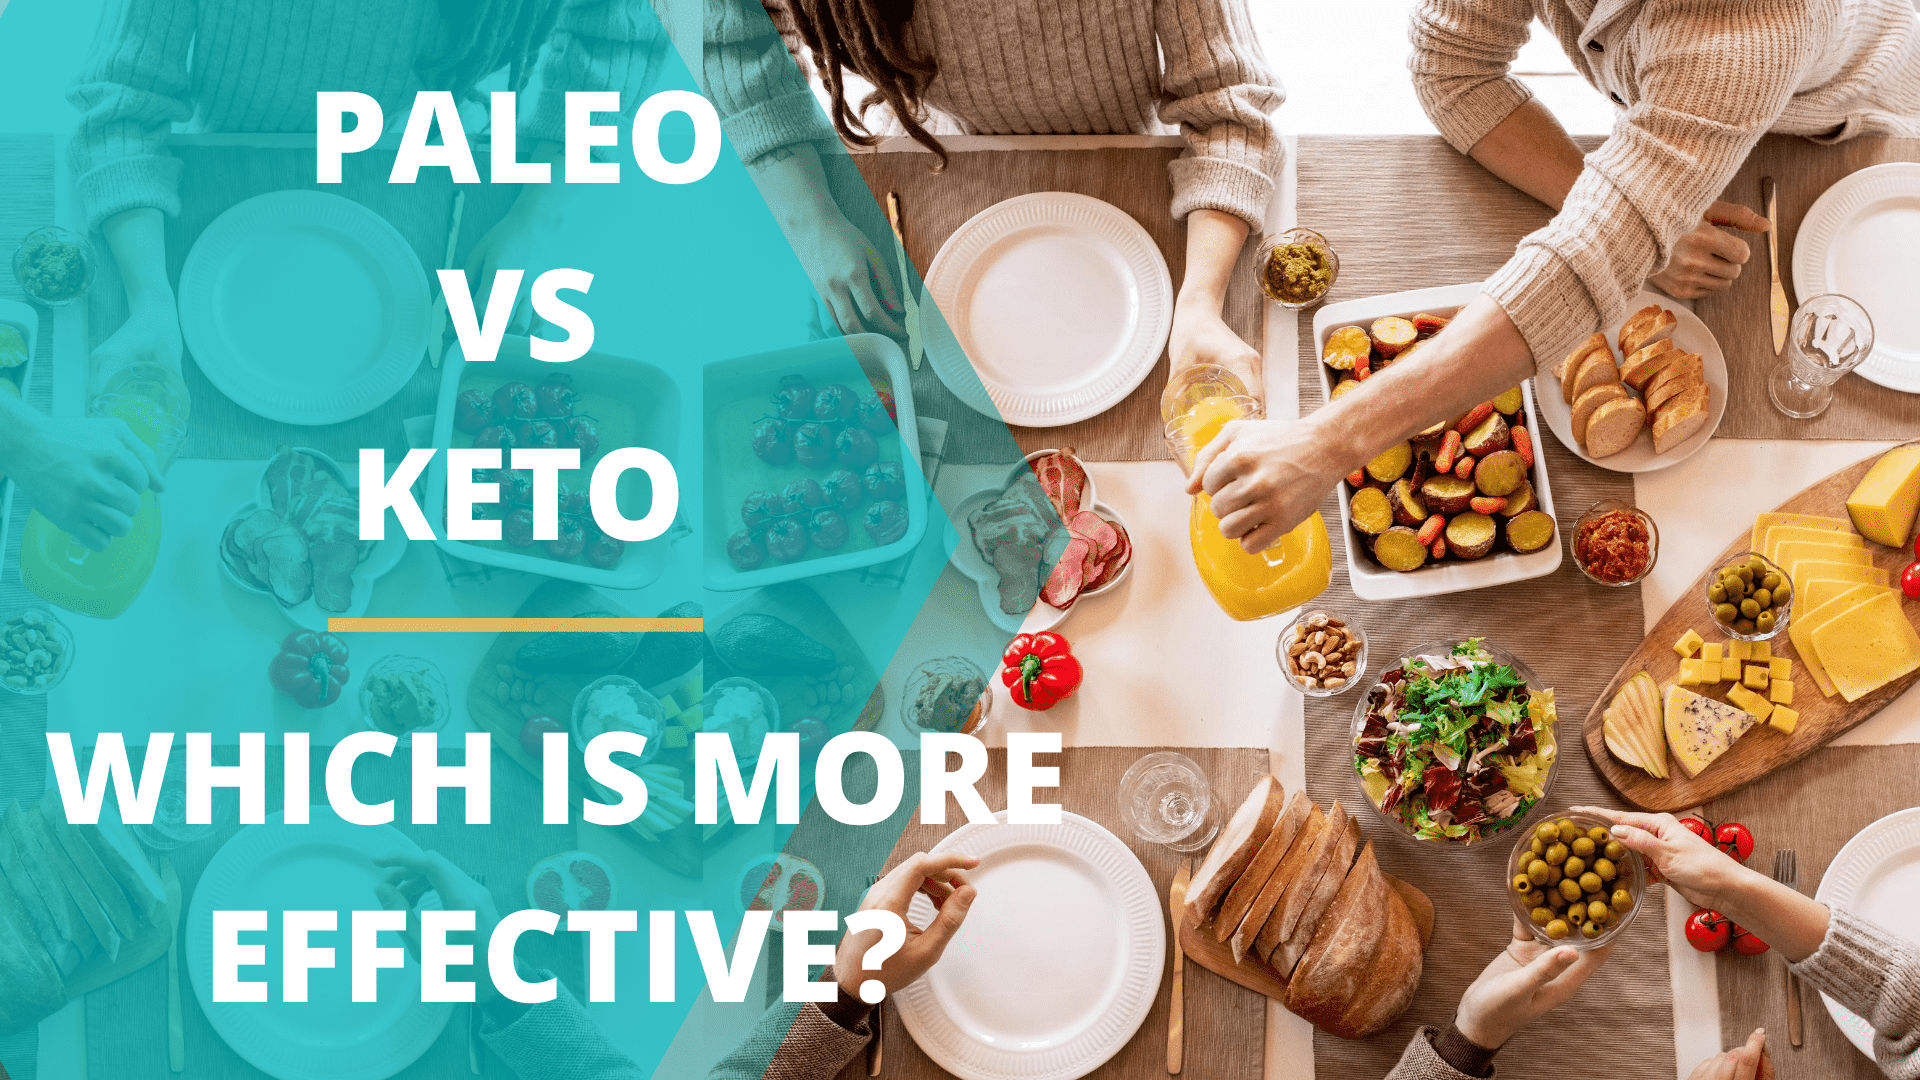 Paleo Vs Keto Diet – Which Is More Effective?